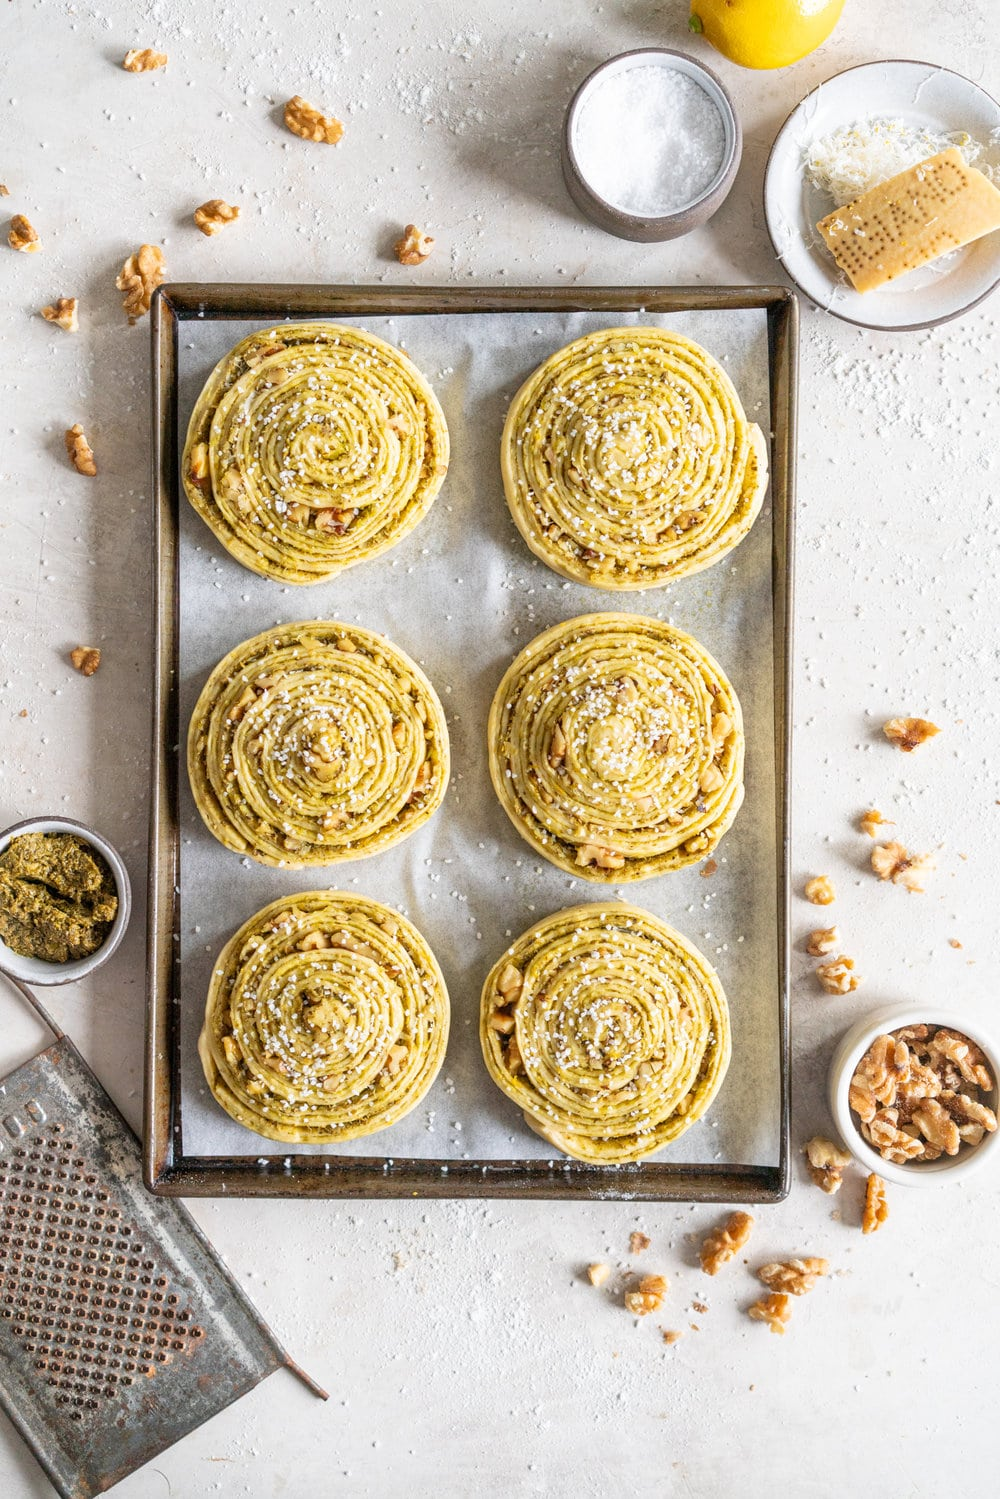 Laminated Brioche Pesto Buns with Lemon, Parmesan, and Walnut - buttery brioche is layered with zesty lemon, basil pesto and cheese, then sprinkled with walnuts and rolled up in to perfect pesto brioche pinwheel rolls. These are the perfect savoury take on a traditional laminated brioche #briocherolls #pestorolls #laminatedbrioche